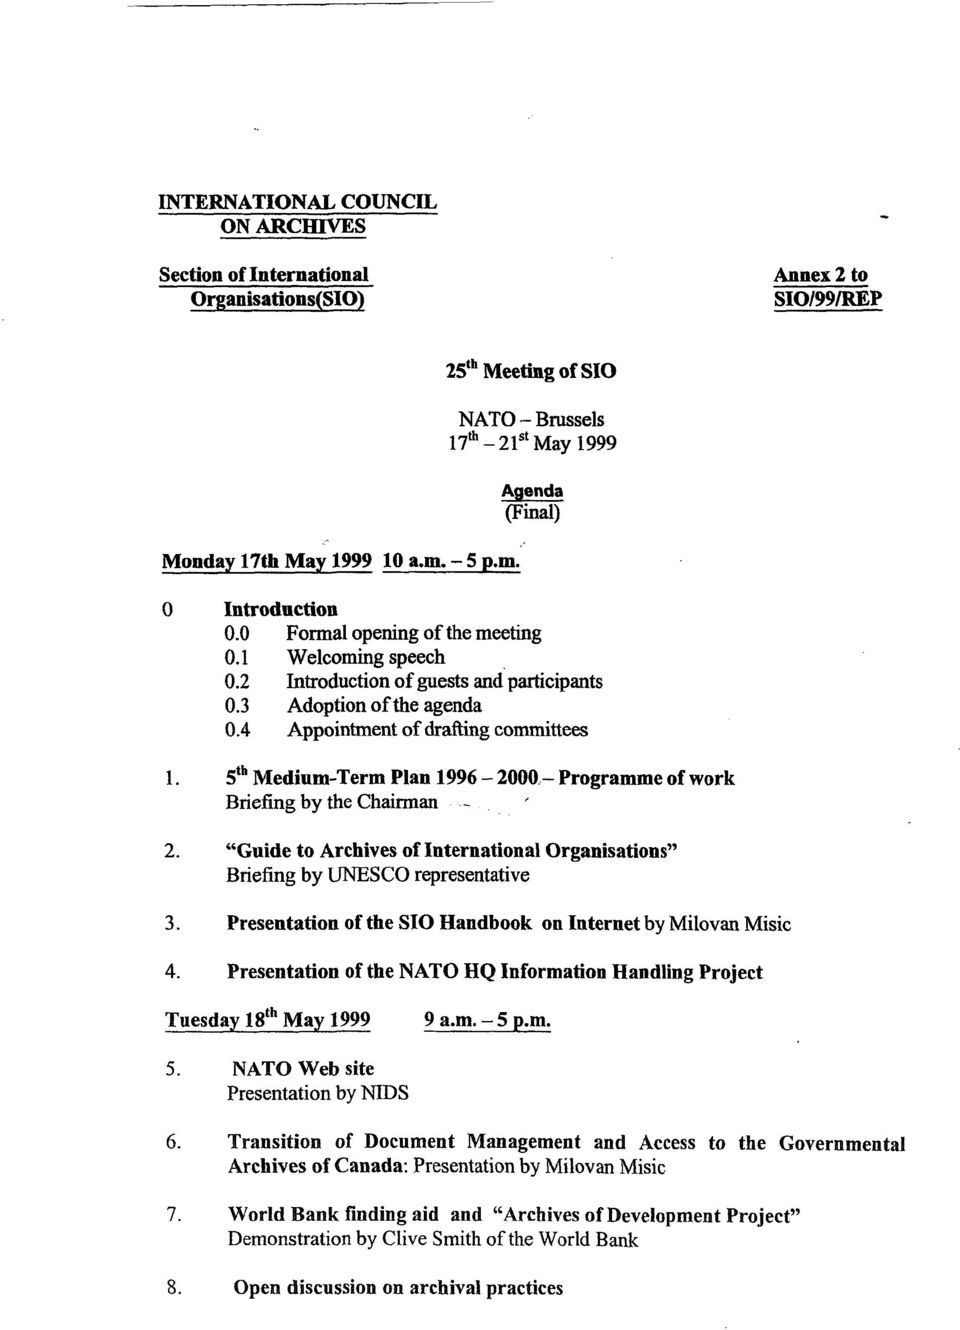 5 h Medium-Term Plan 1996-2000..- Programme of work Briefing by the Chairman.- 2. Guide to Archives of International Organisations Briefing by UNESCO representative 3.